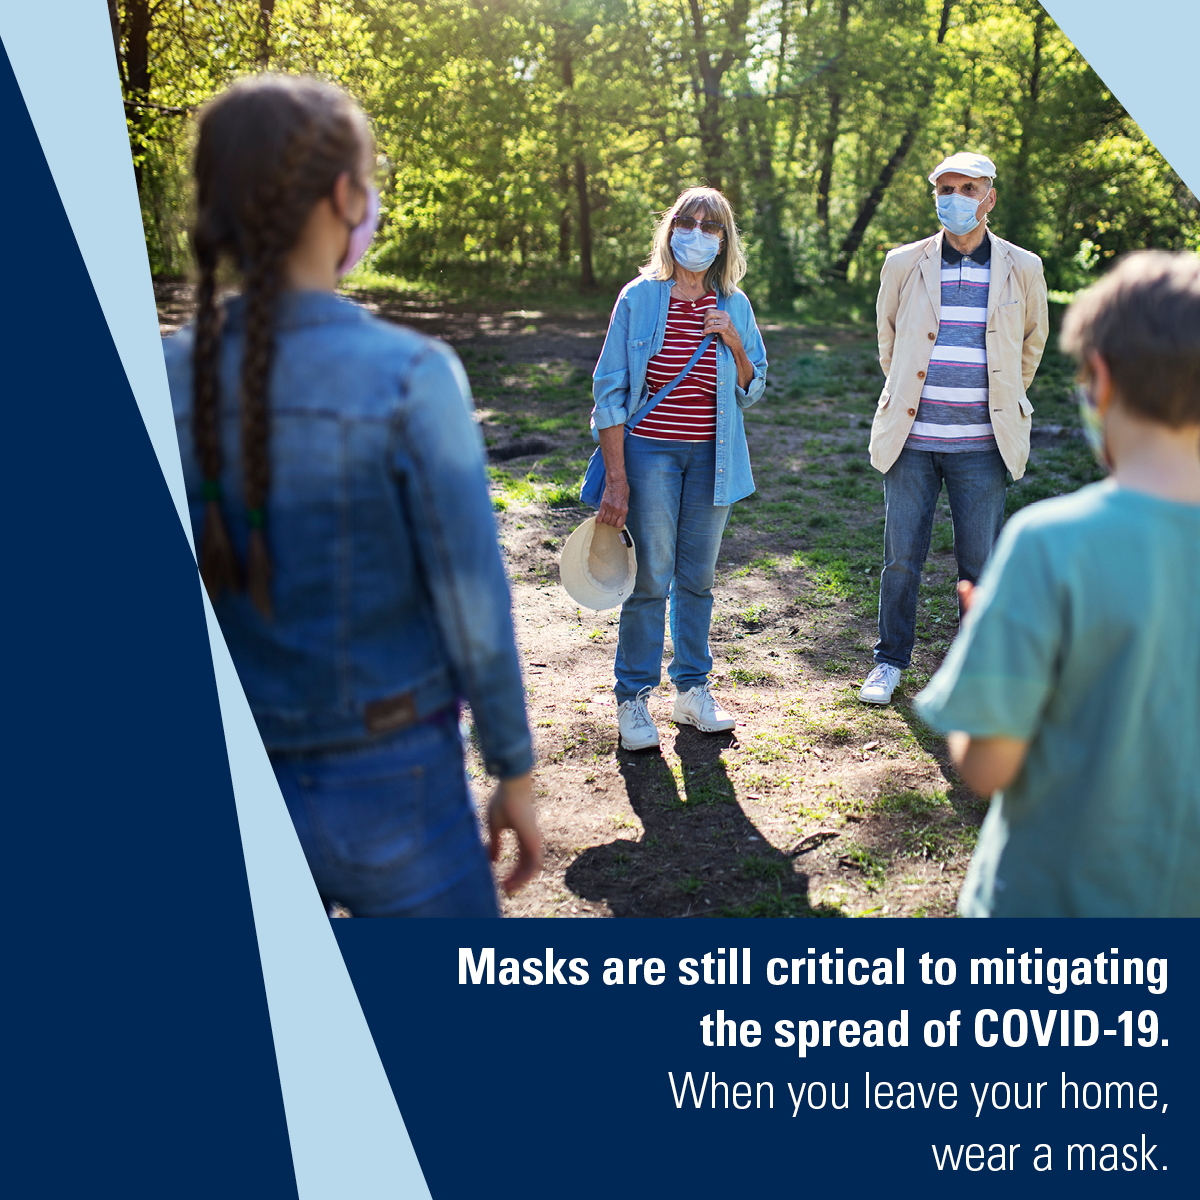 Two adults and three children wearing masks stand in a circle talking. Caption: Masks are still critical to mitigating the spread of COVID-19. When you leave your home, wear a mask.